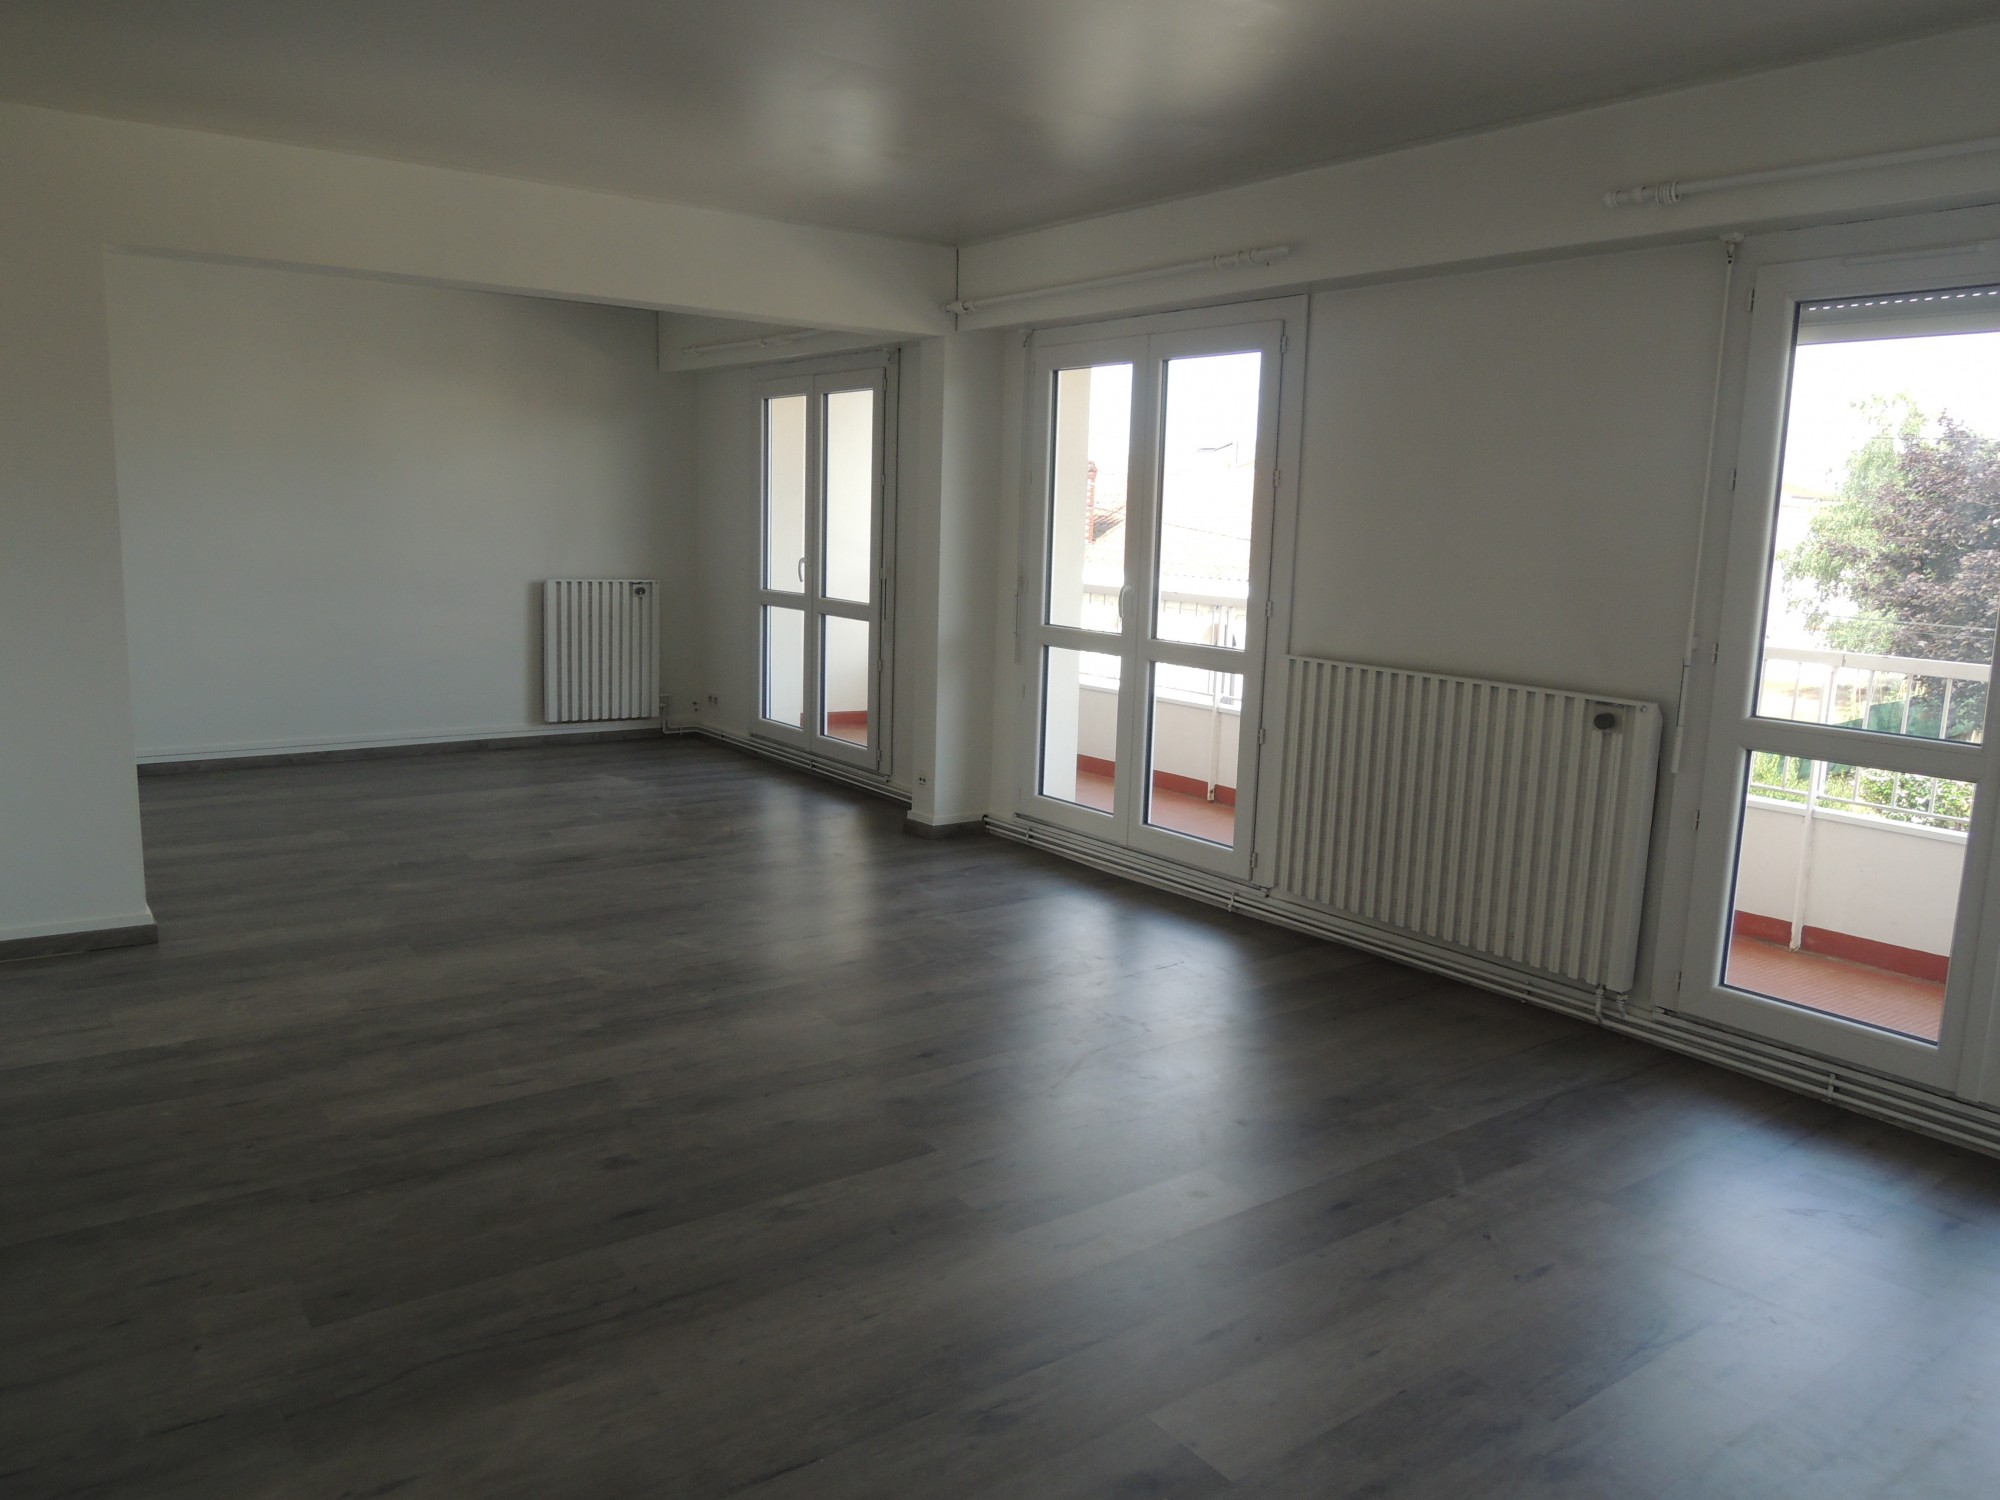 Location appartement t6 f6 bordeaux caud ran bru immobilier for Site location appartement bordeaux